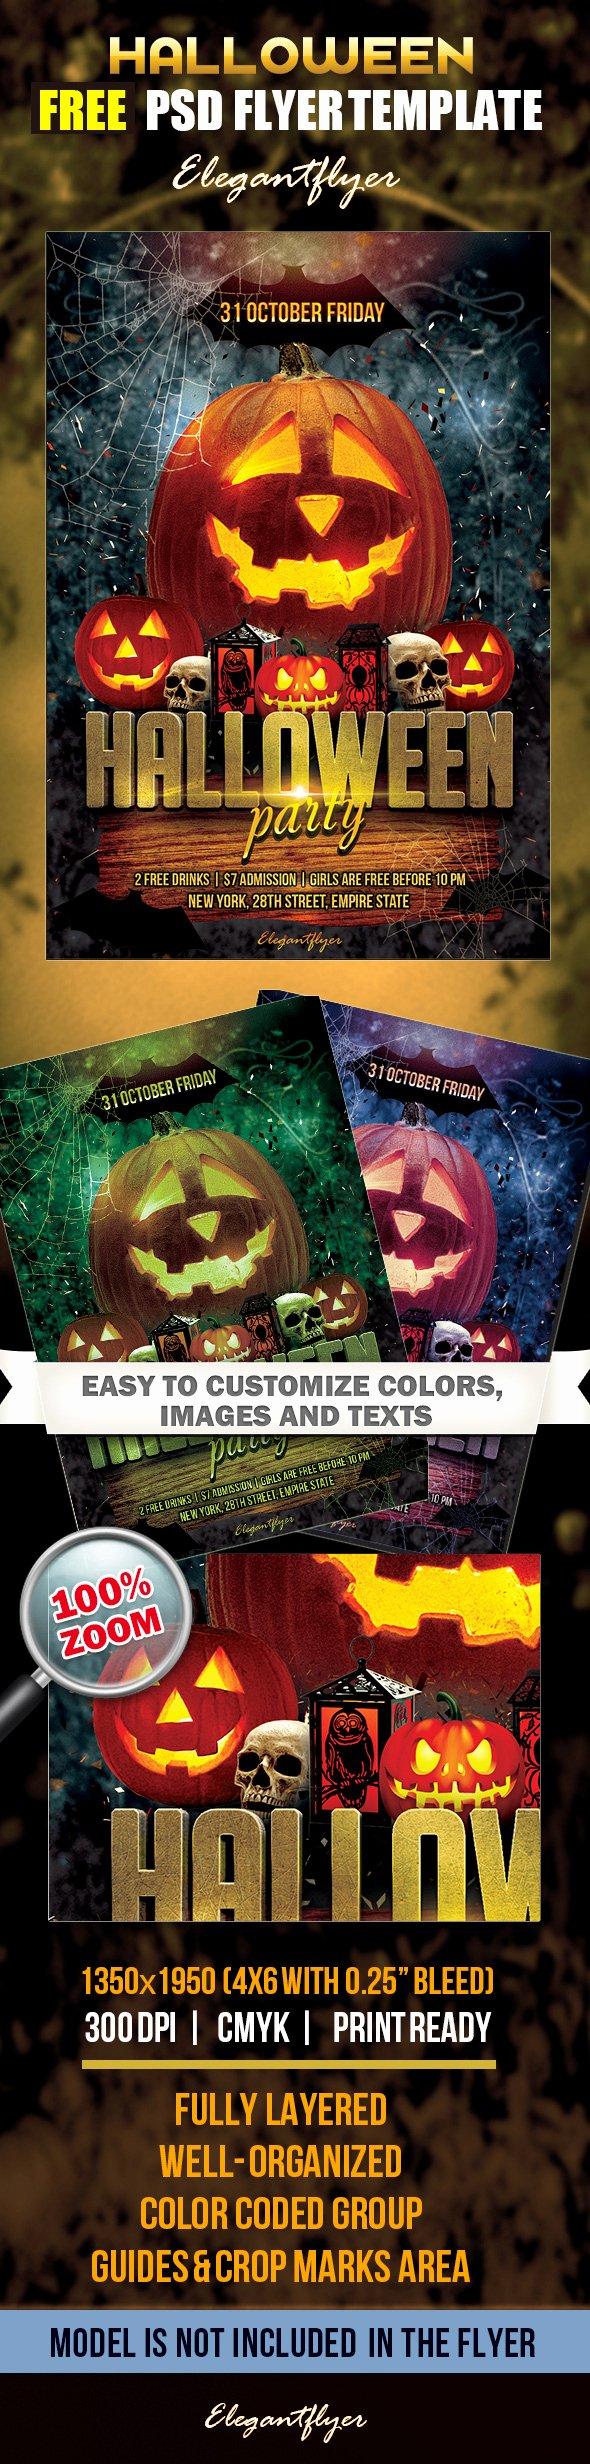 Free Halloween Flyer Template Luxury 20 Free Psd Halloween Flyer Templates